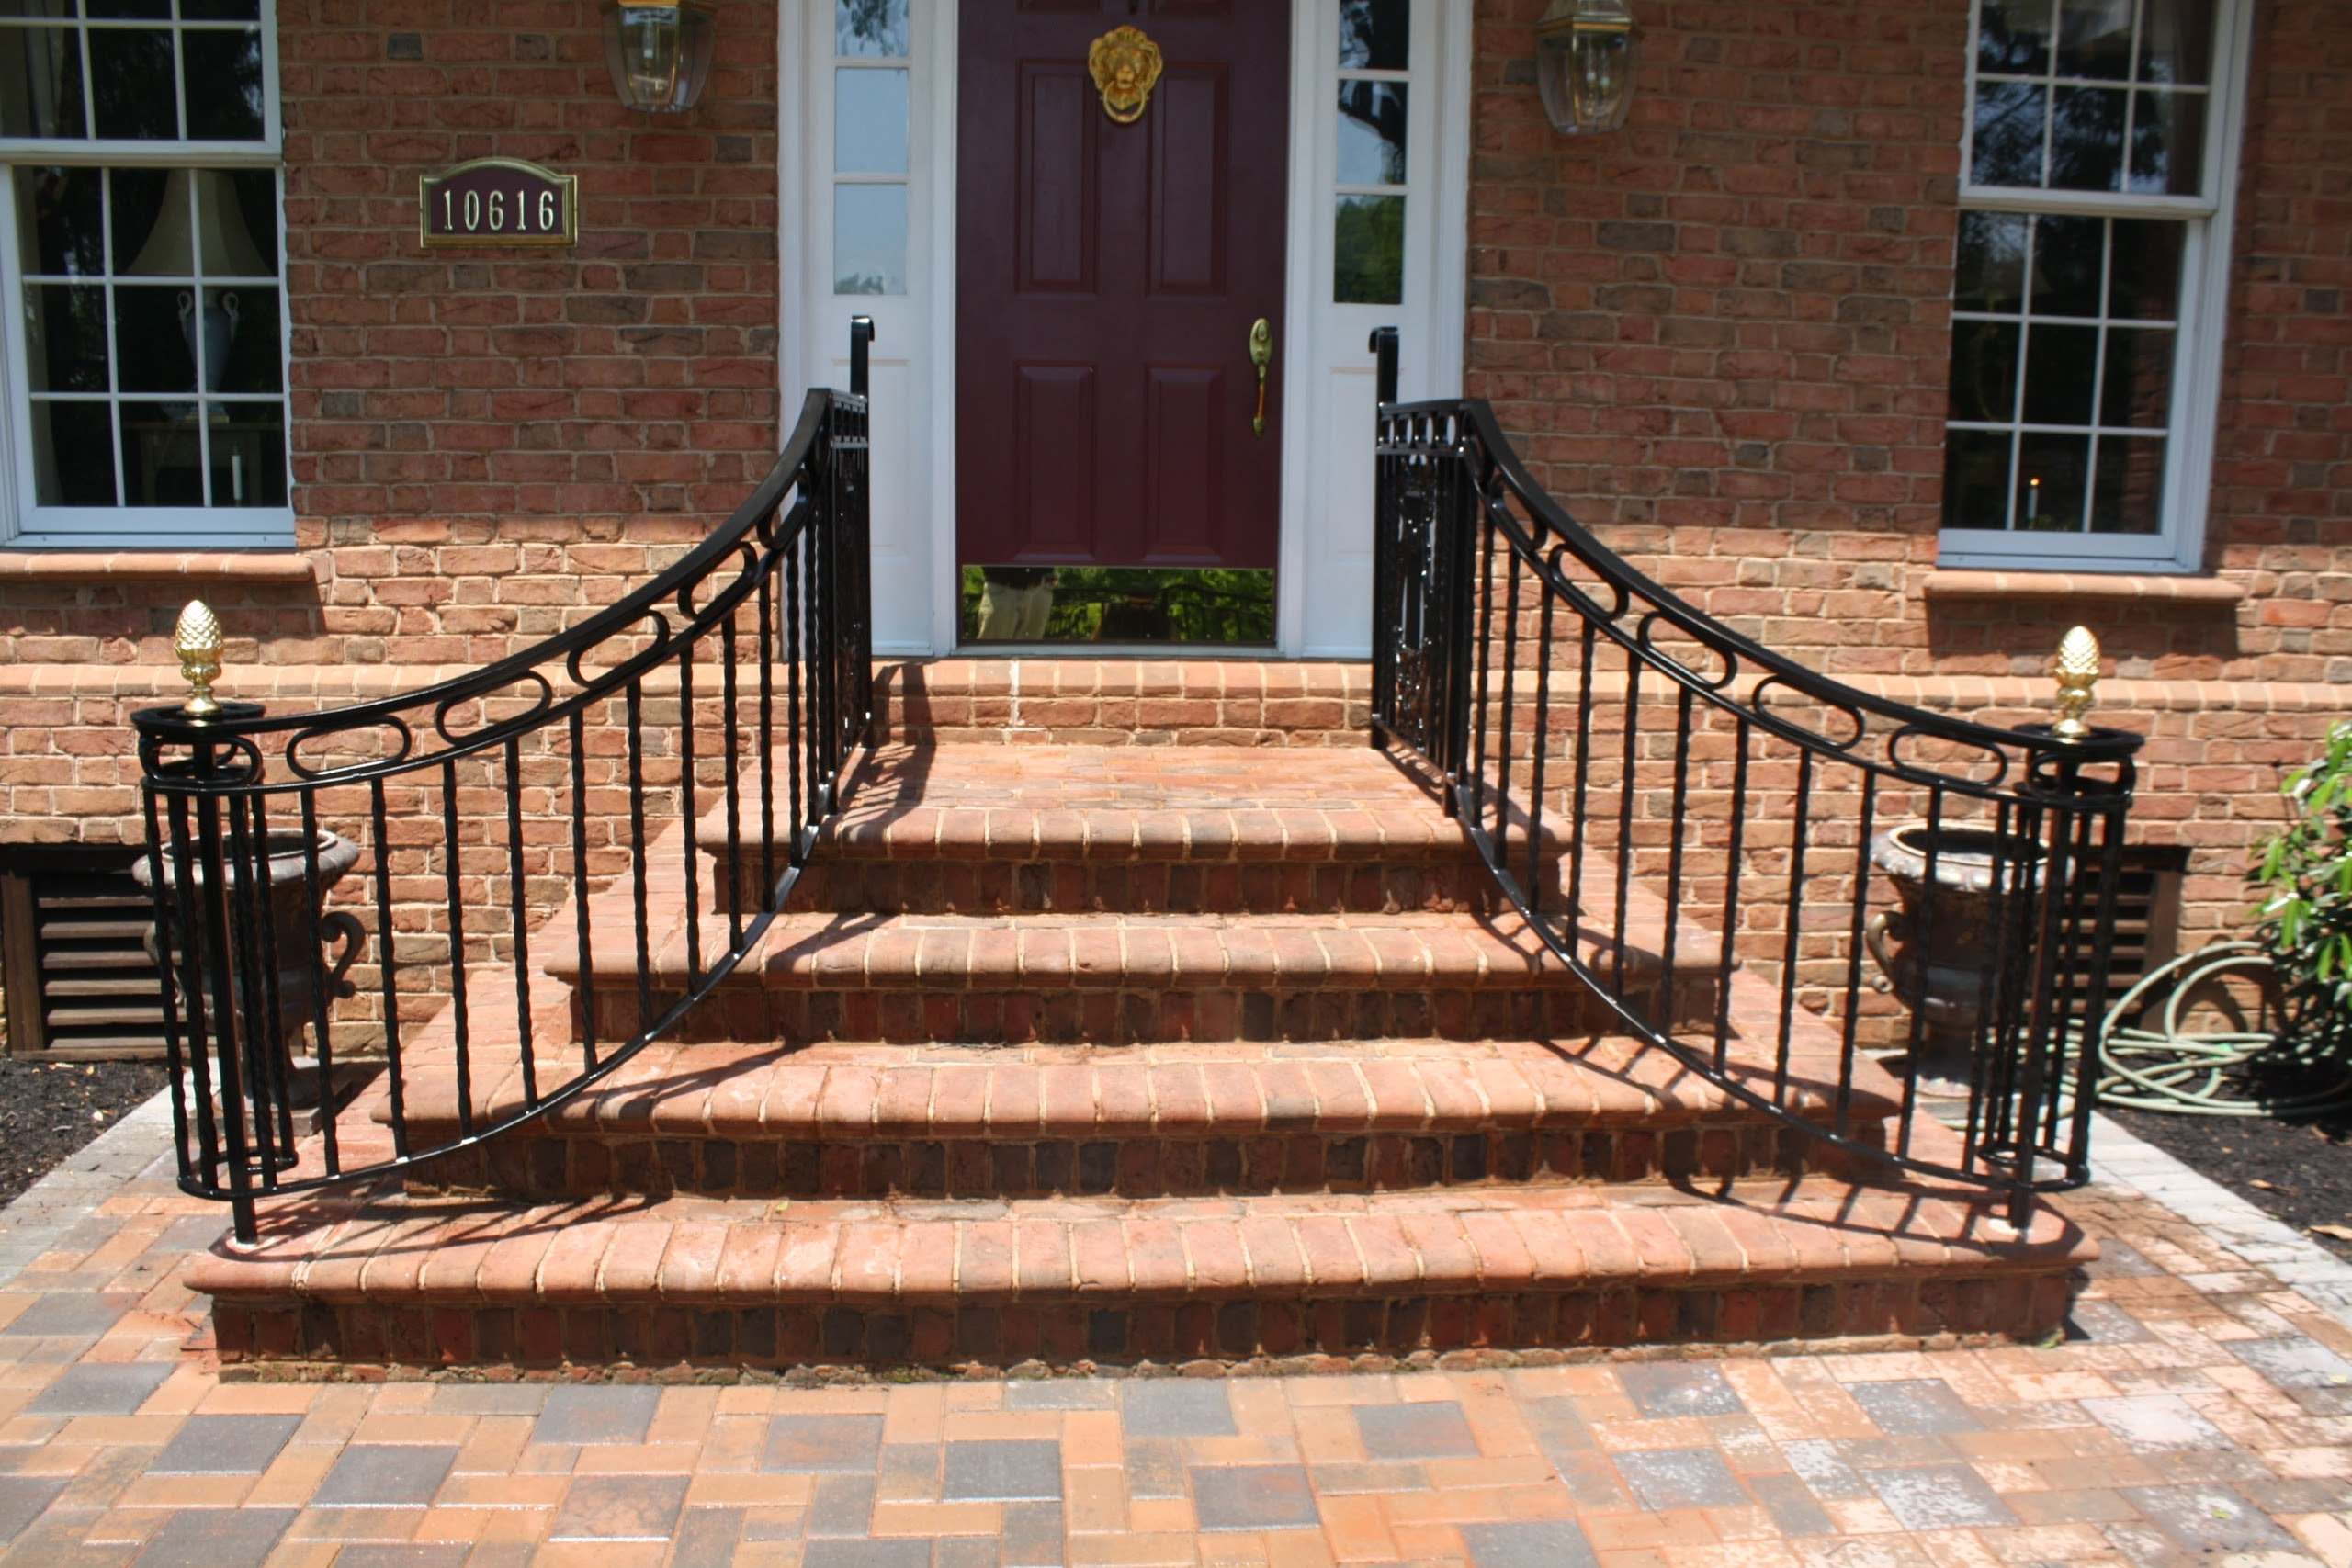 Porch Brick Front Porch Steps Curved   Exterior Handrails For Brick Steps   Staircase   Vinyl Railing   Wrap Around   Deck Railing   Wood